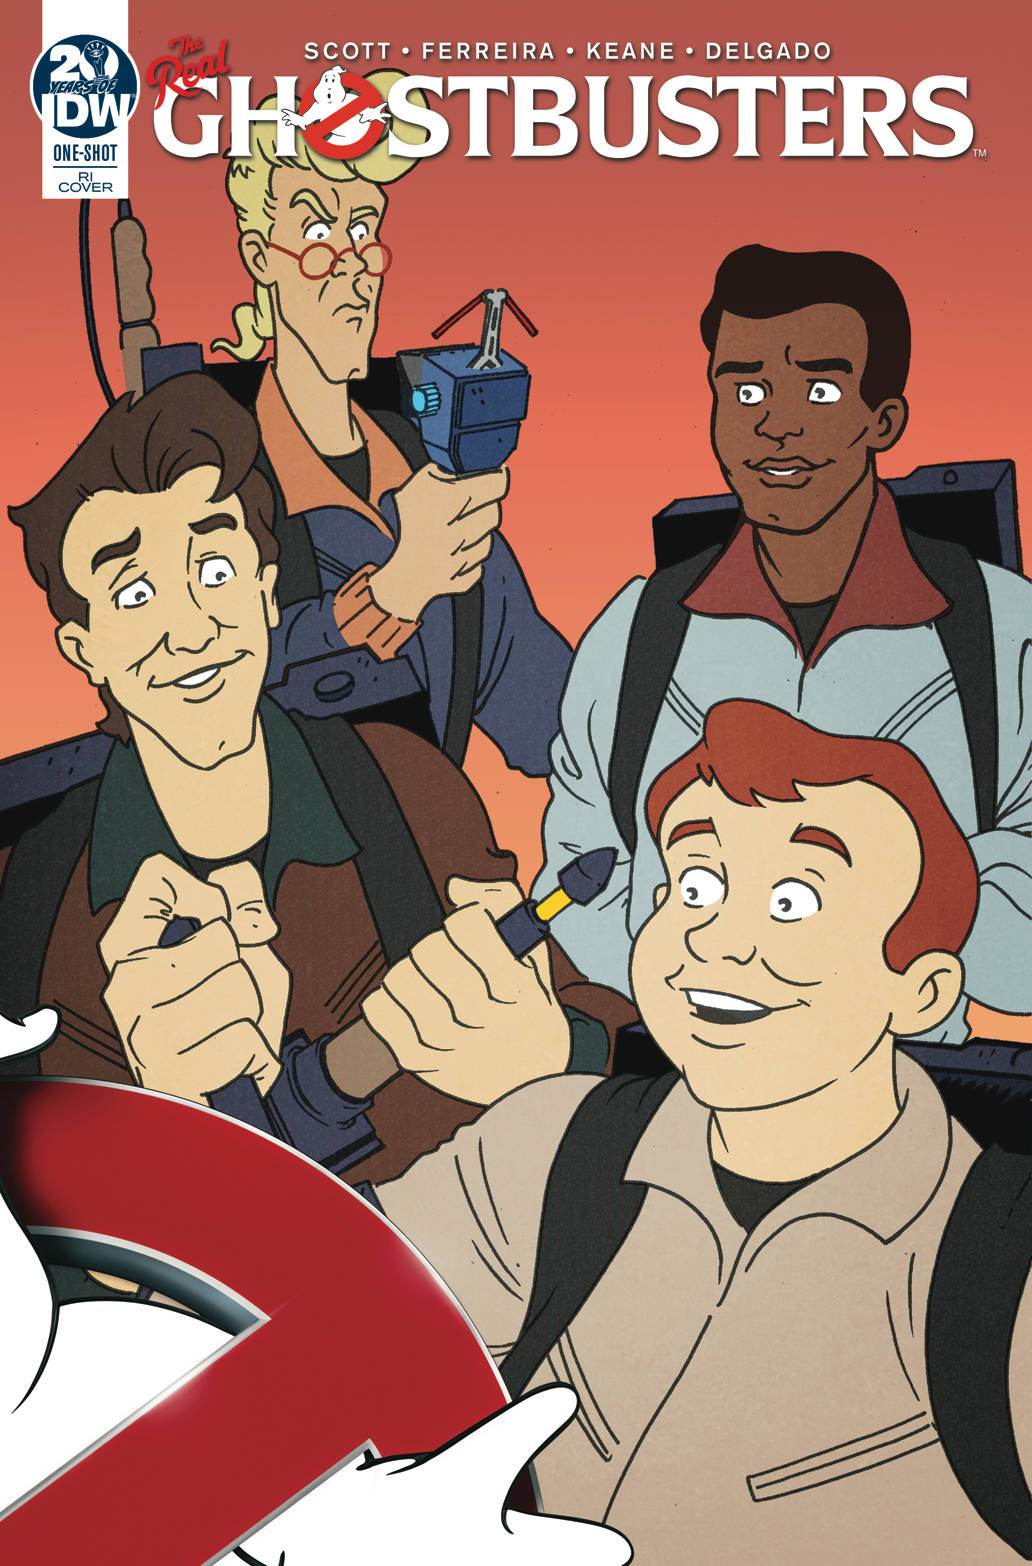 GHOSTBUSTERS 35TH ANNIV REAL GHOSTBUSTERS 1 10 COPY INCV MARQUES.jpg